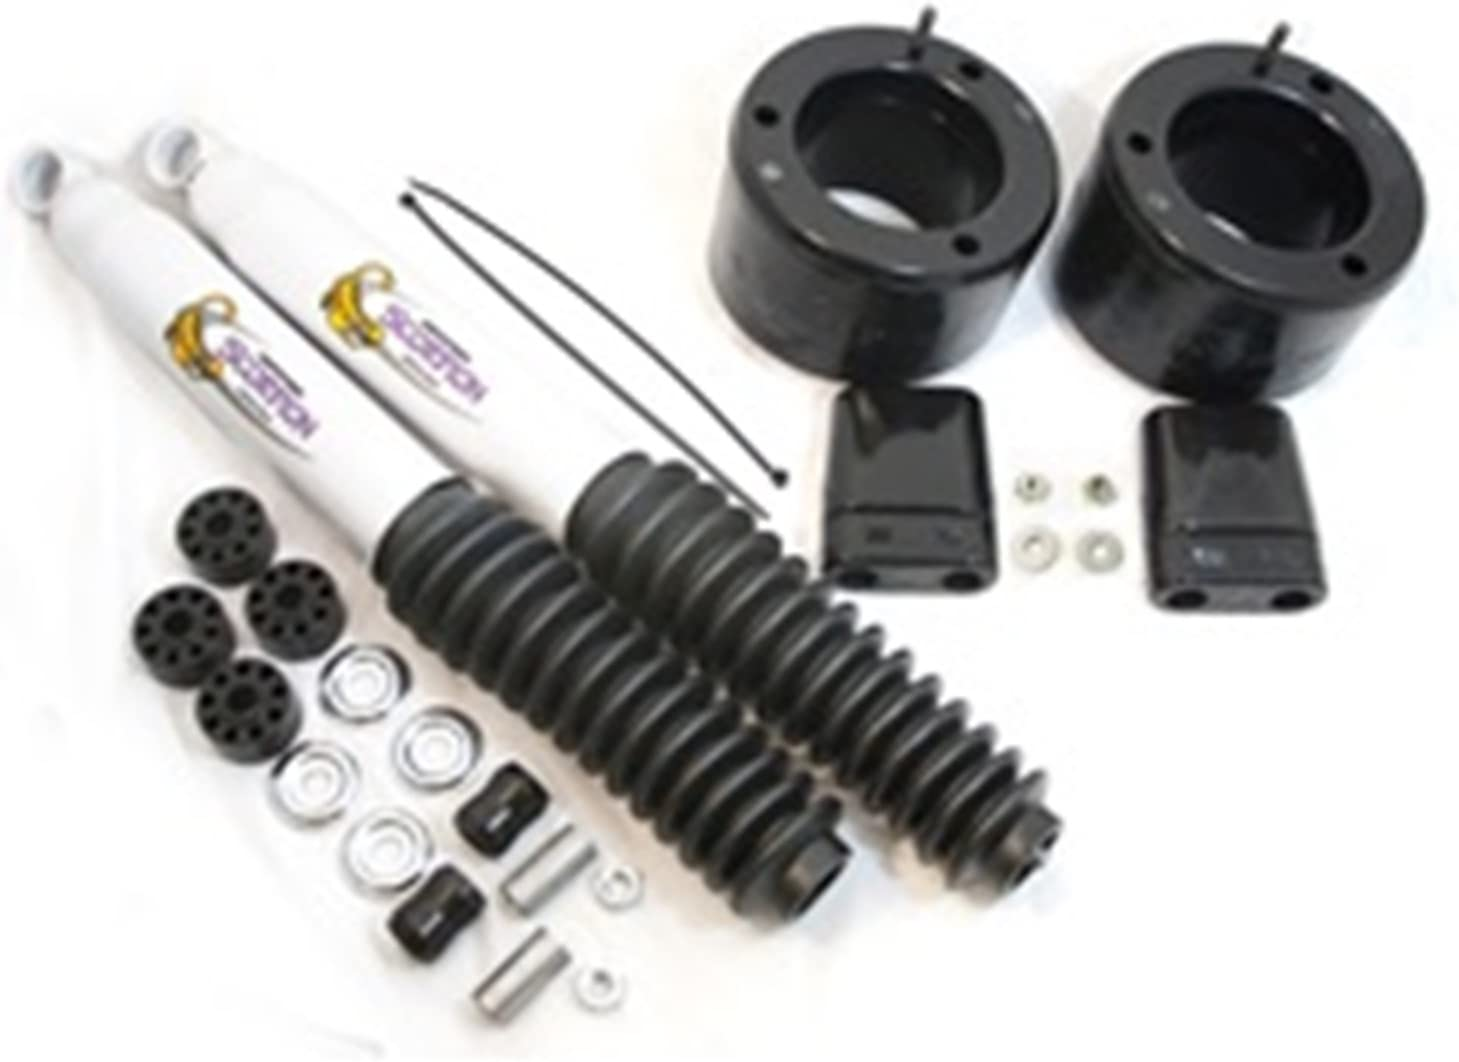 Made in America Daystar all cabs KC09137BK with bump stops and front shocks all transmissions fits production date of May 2013 to 2017 2WD Dodge RAM 2500//3500 2 Leveling Kit